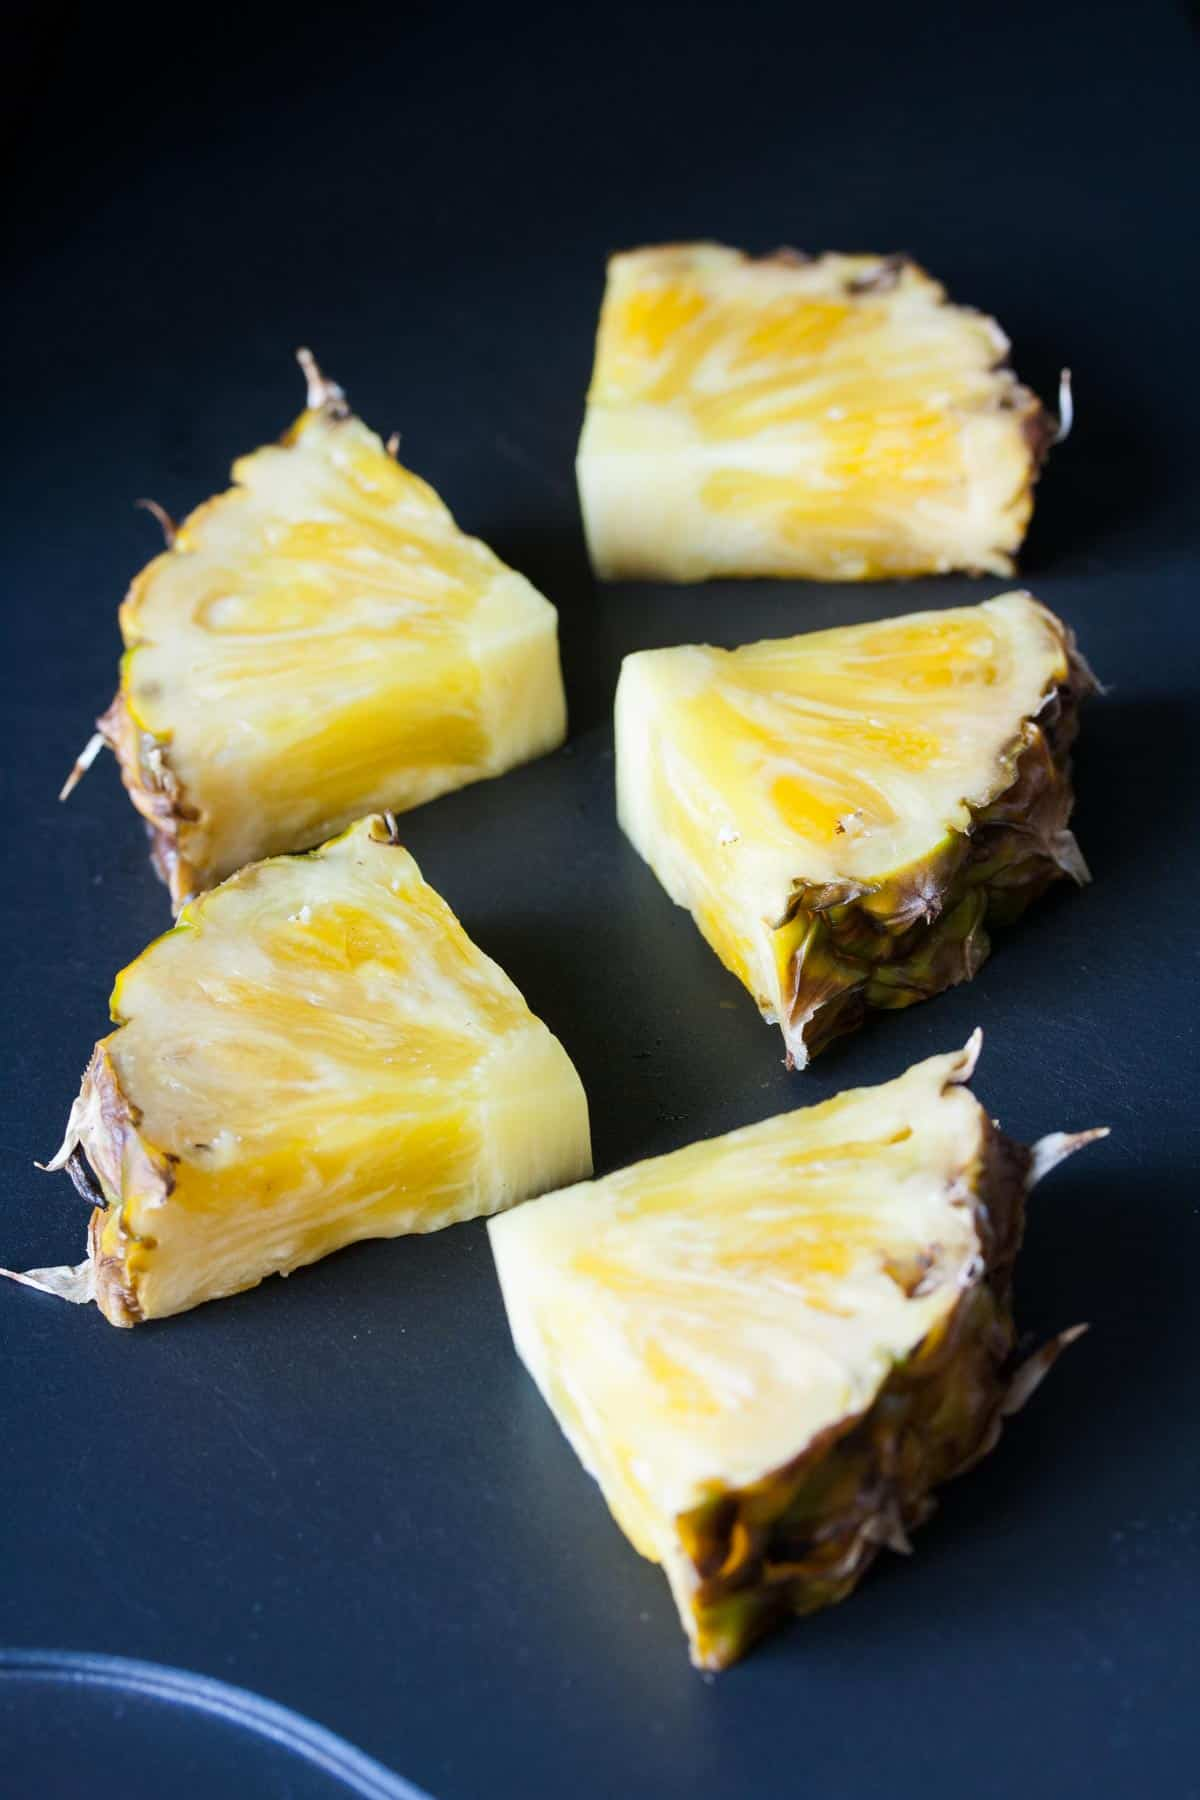 Slices of pineapple being grilled on a flat grill pan